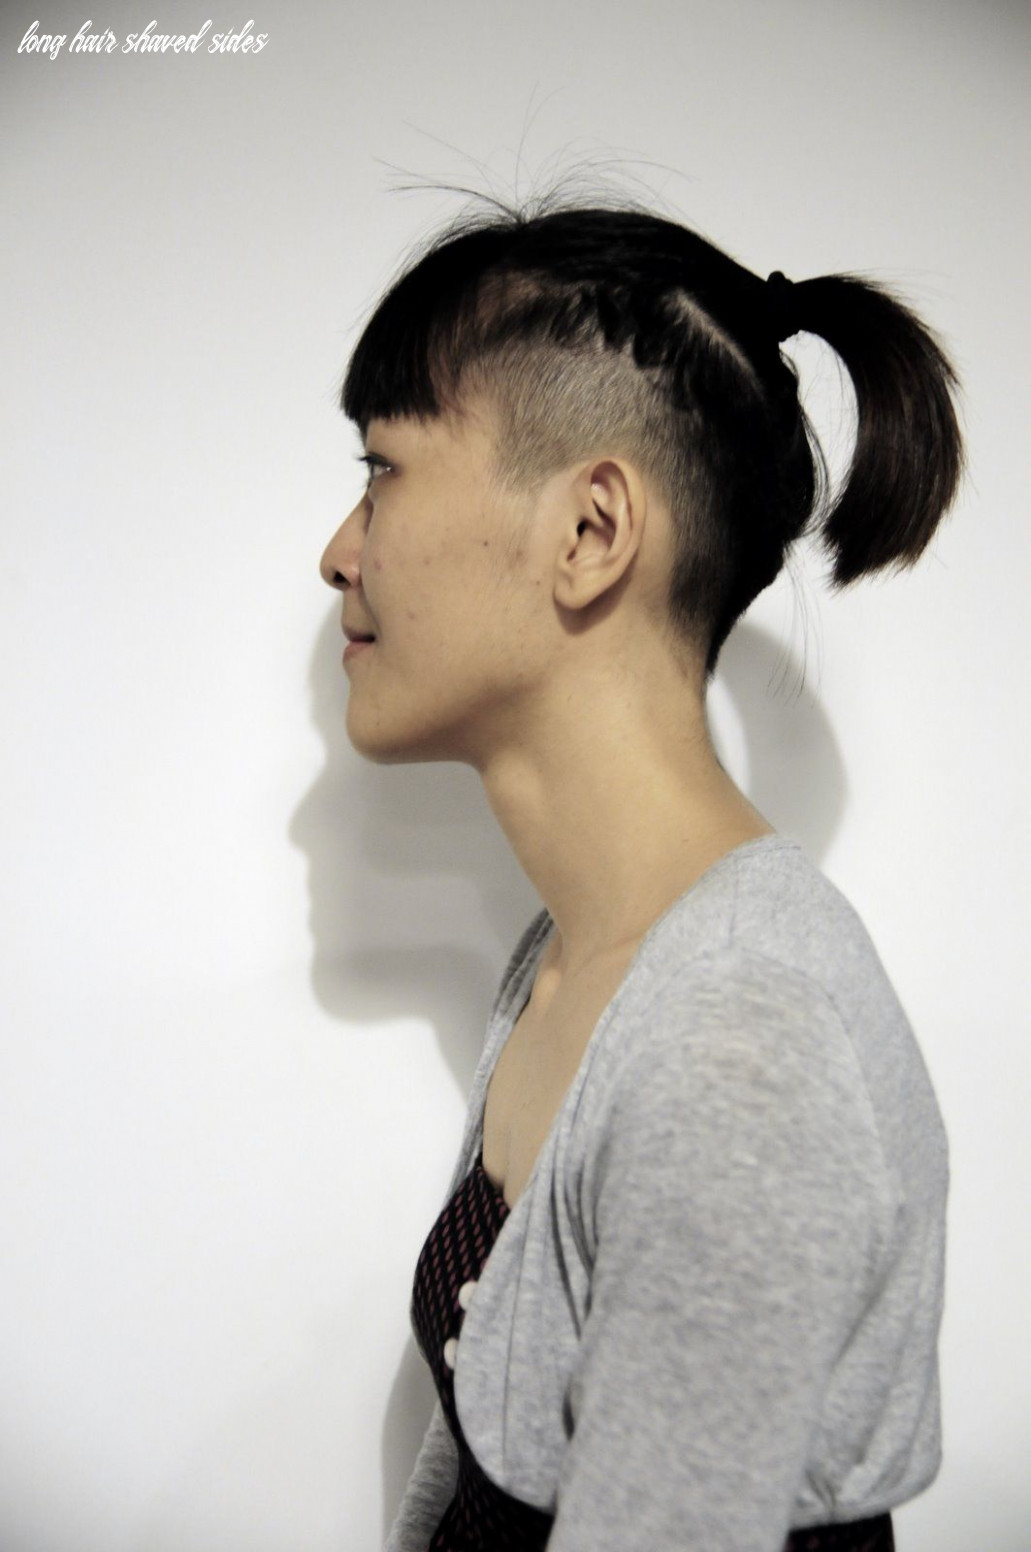 shaved sides | Long hair shaved sides, Asian hair, Wavy curly hair